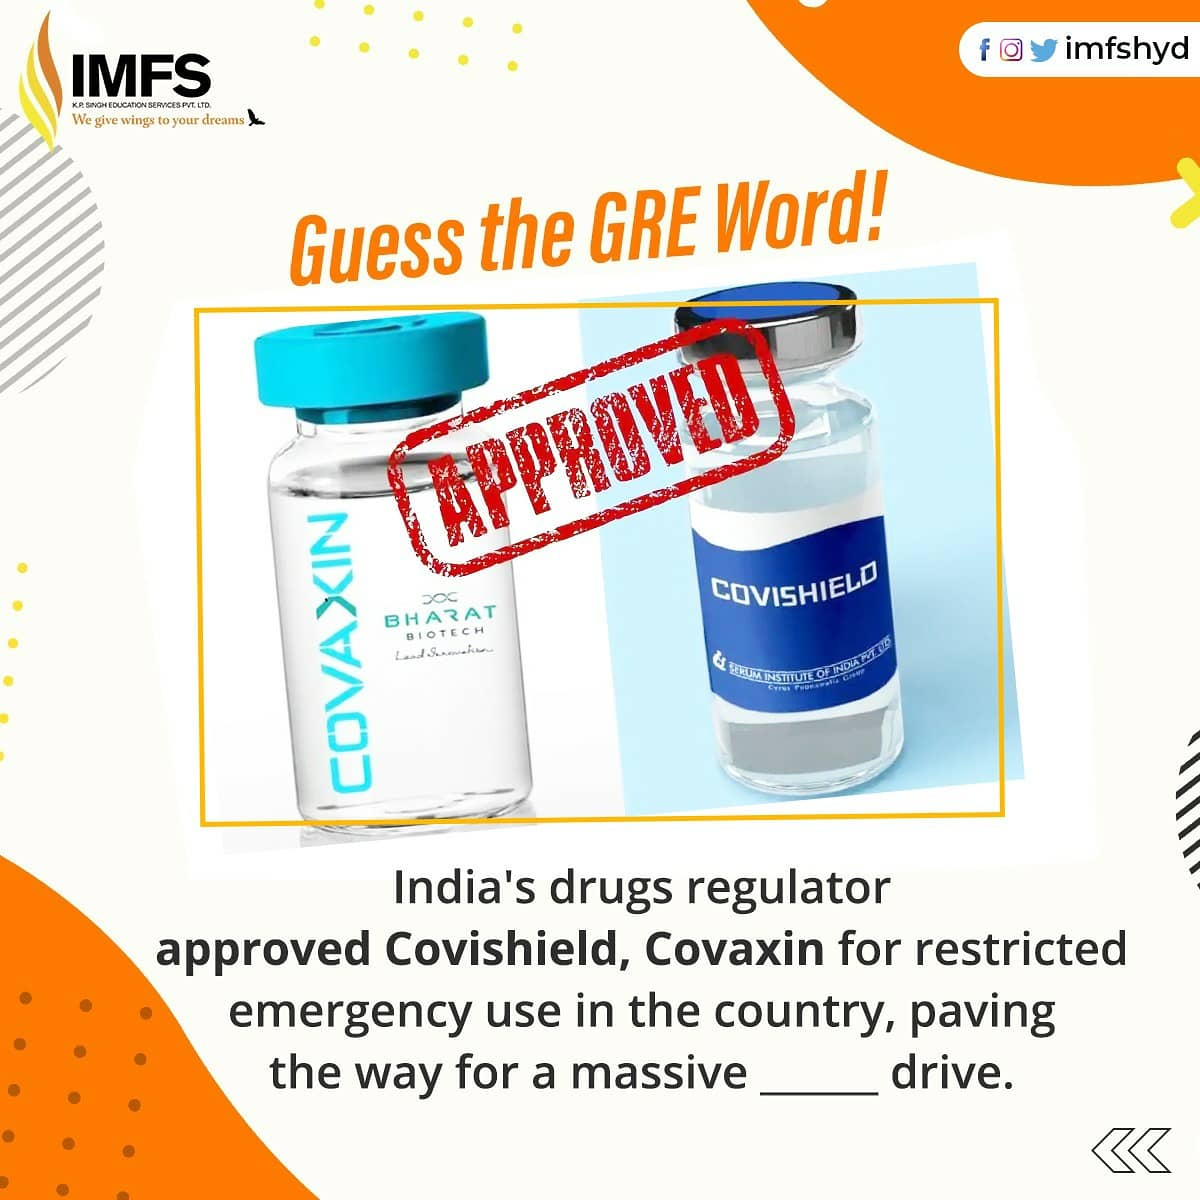 Here's the word of the day. Comment below 👇 how would you use Inoculation in a sentence. . . . #IMFS #IMFSHyderabad #StudyAbroad #AbroadEducation #OnlyIMFS #covid19 #inoculation #India  #Science #pmmodi #modi #covidinindia #bharatbiotech #Vaccines4All